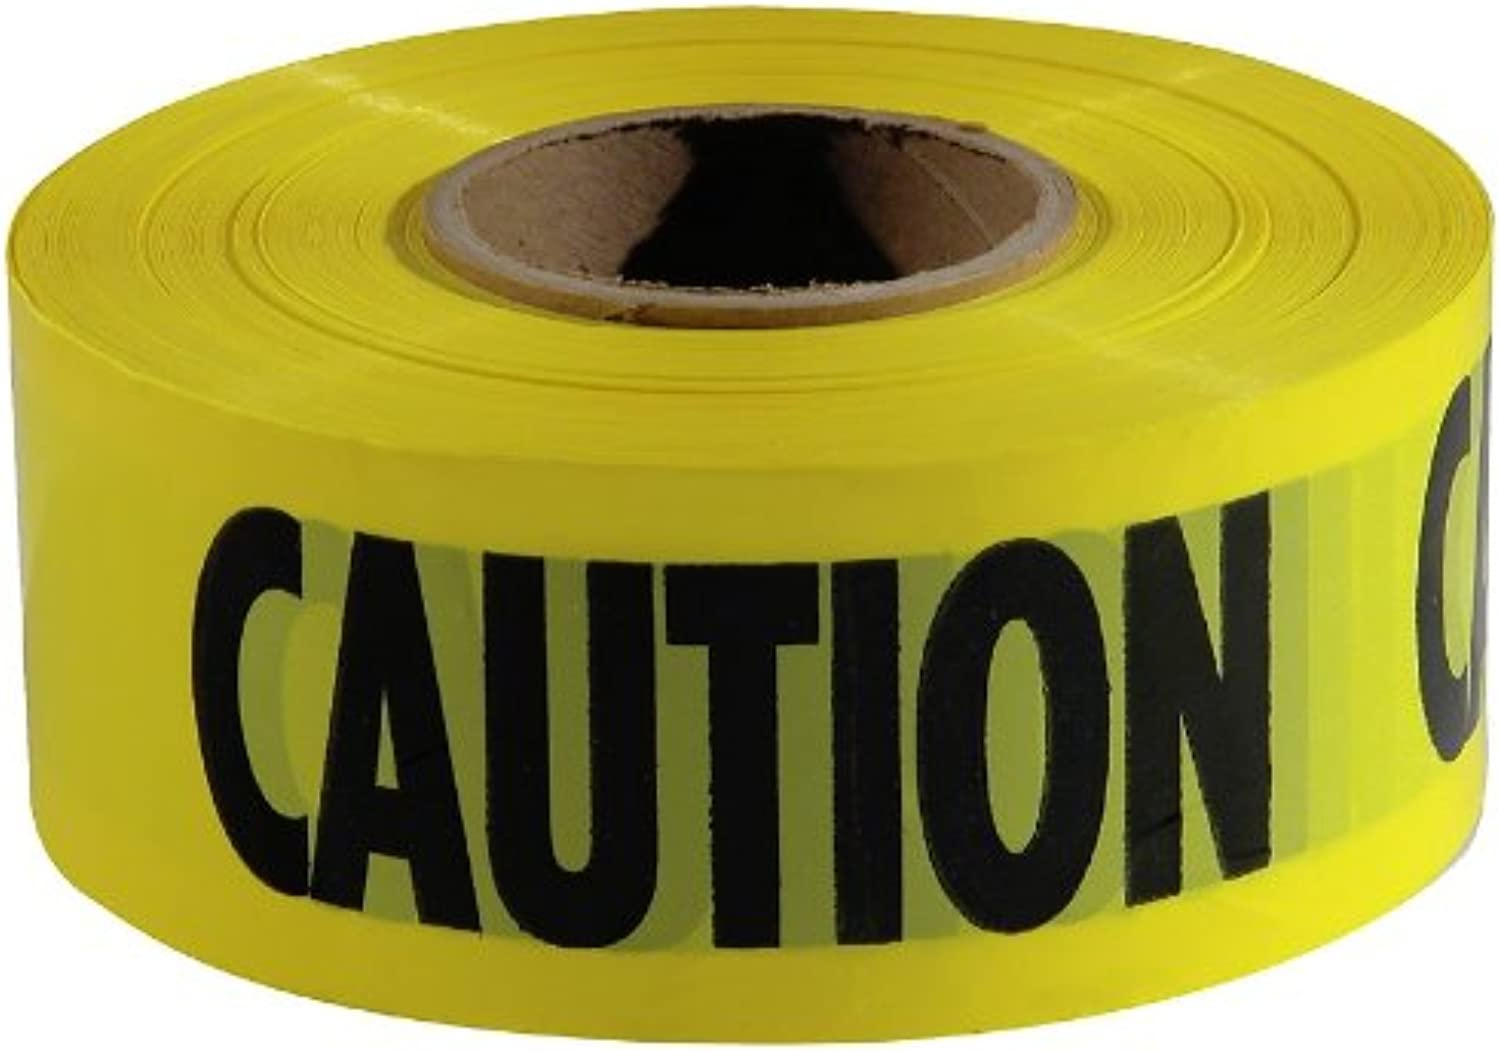 MOT Empire 771001 Caution Barricade Tape, Caution Text, 3  x 1000ft, Yellow Black